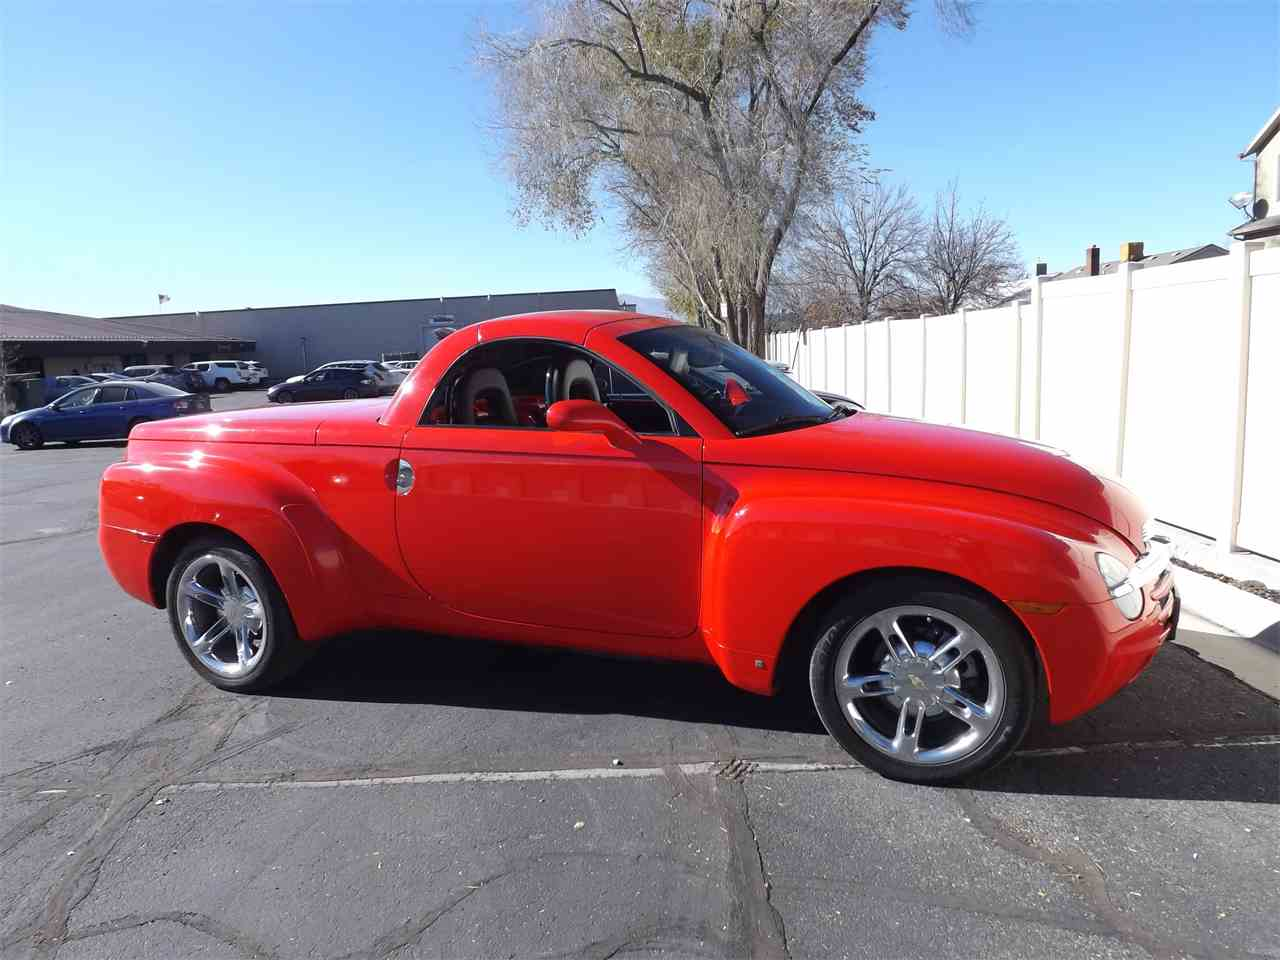 All Chevy 2006 chevrolet ssr for sale : Classic Chevrolet SSR for Sale on ClassicCars.com